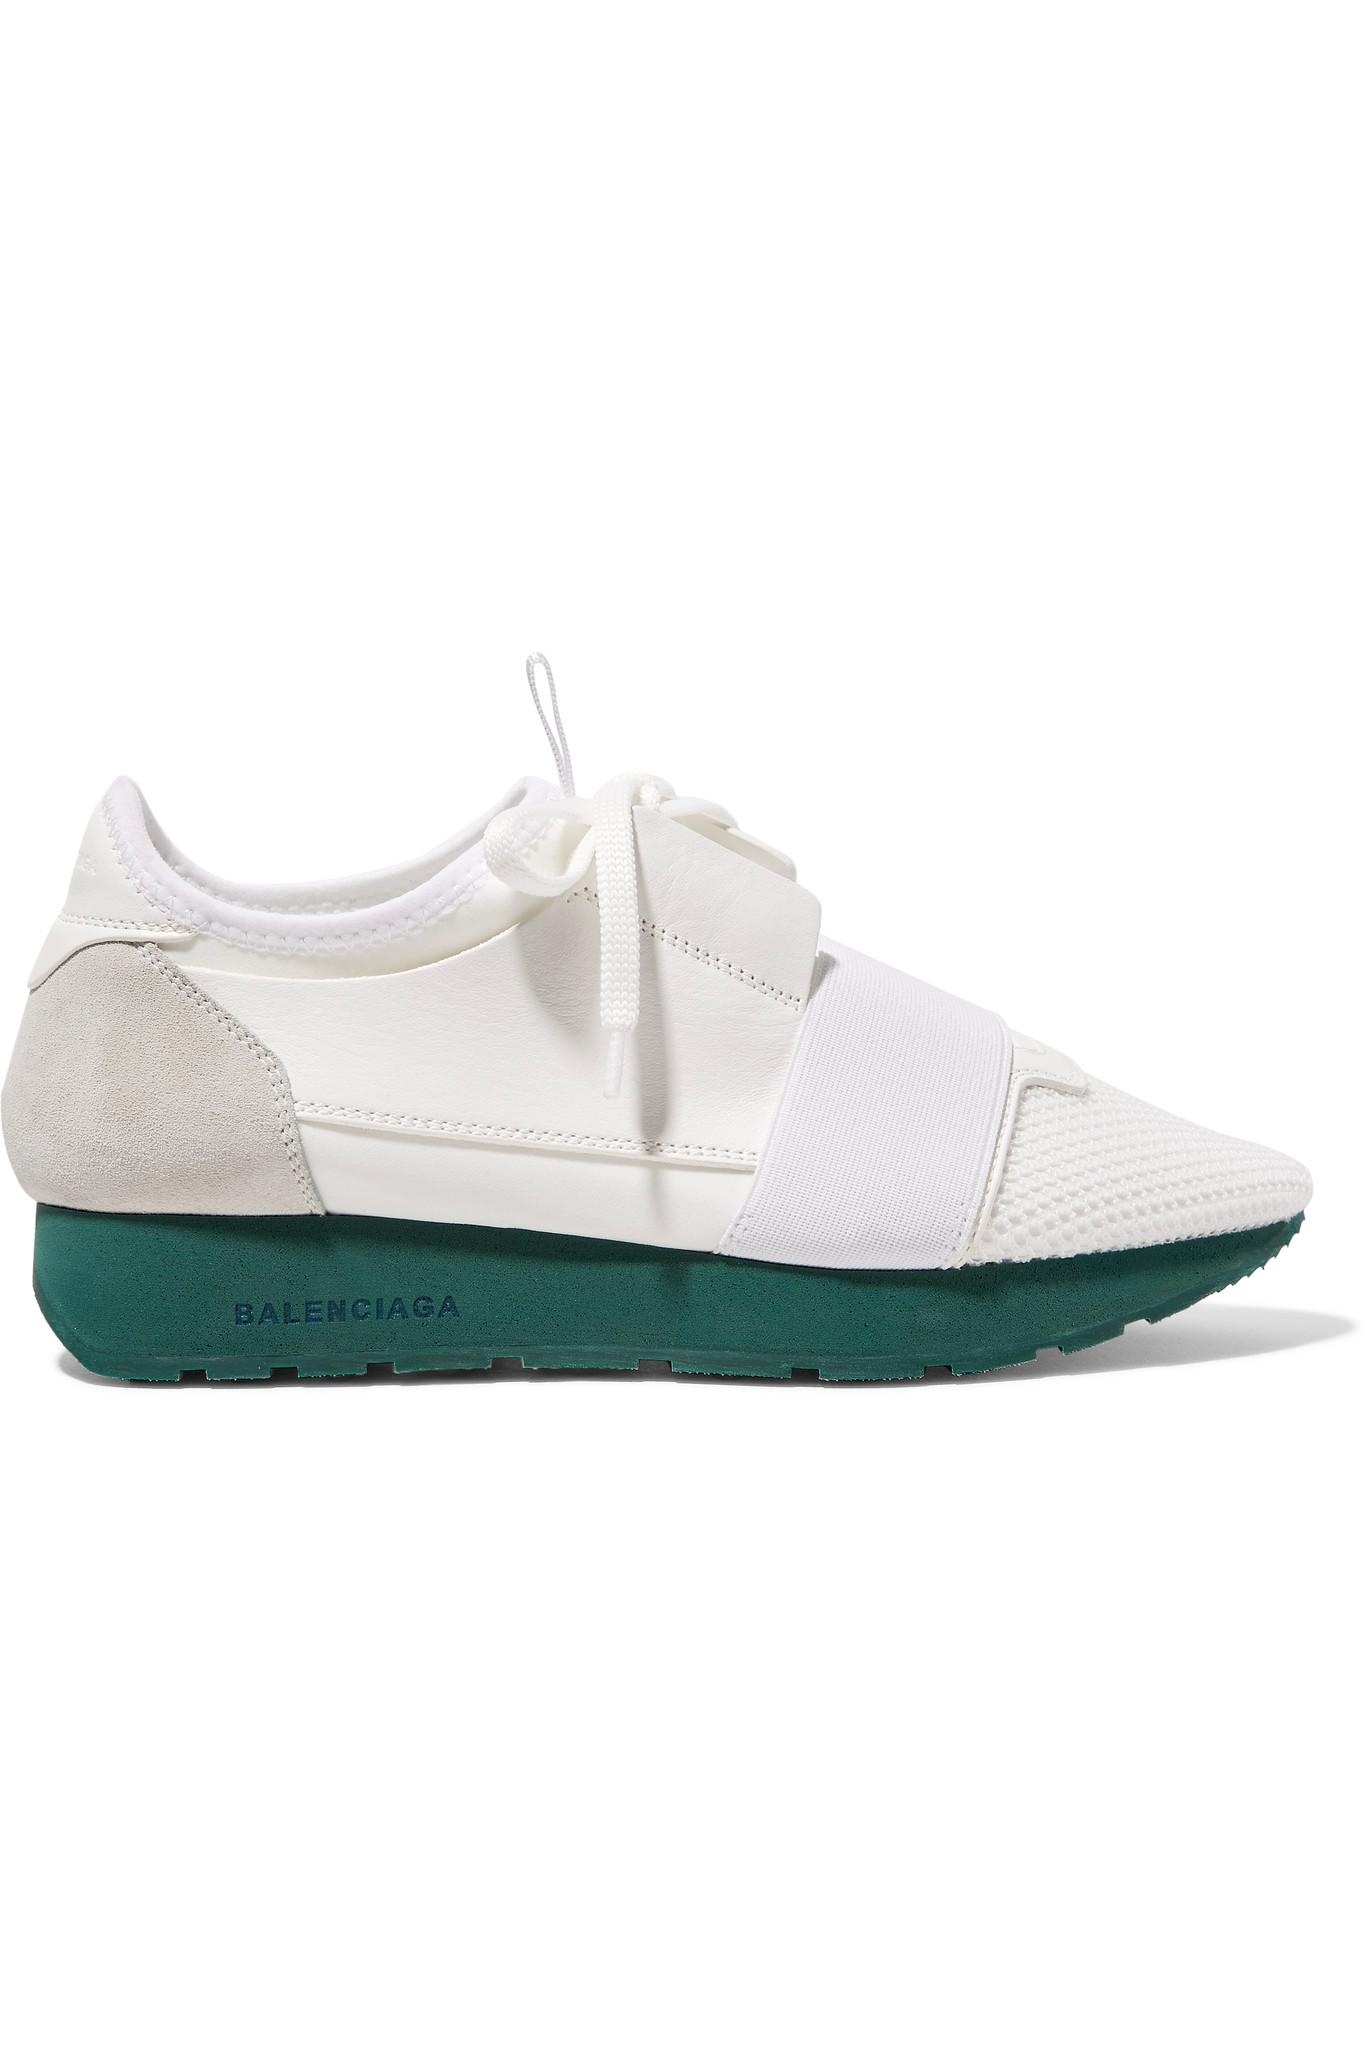 Race Runner Leather, Suede, Mesh And Neoprene Sneakers - White Balenciaga